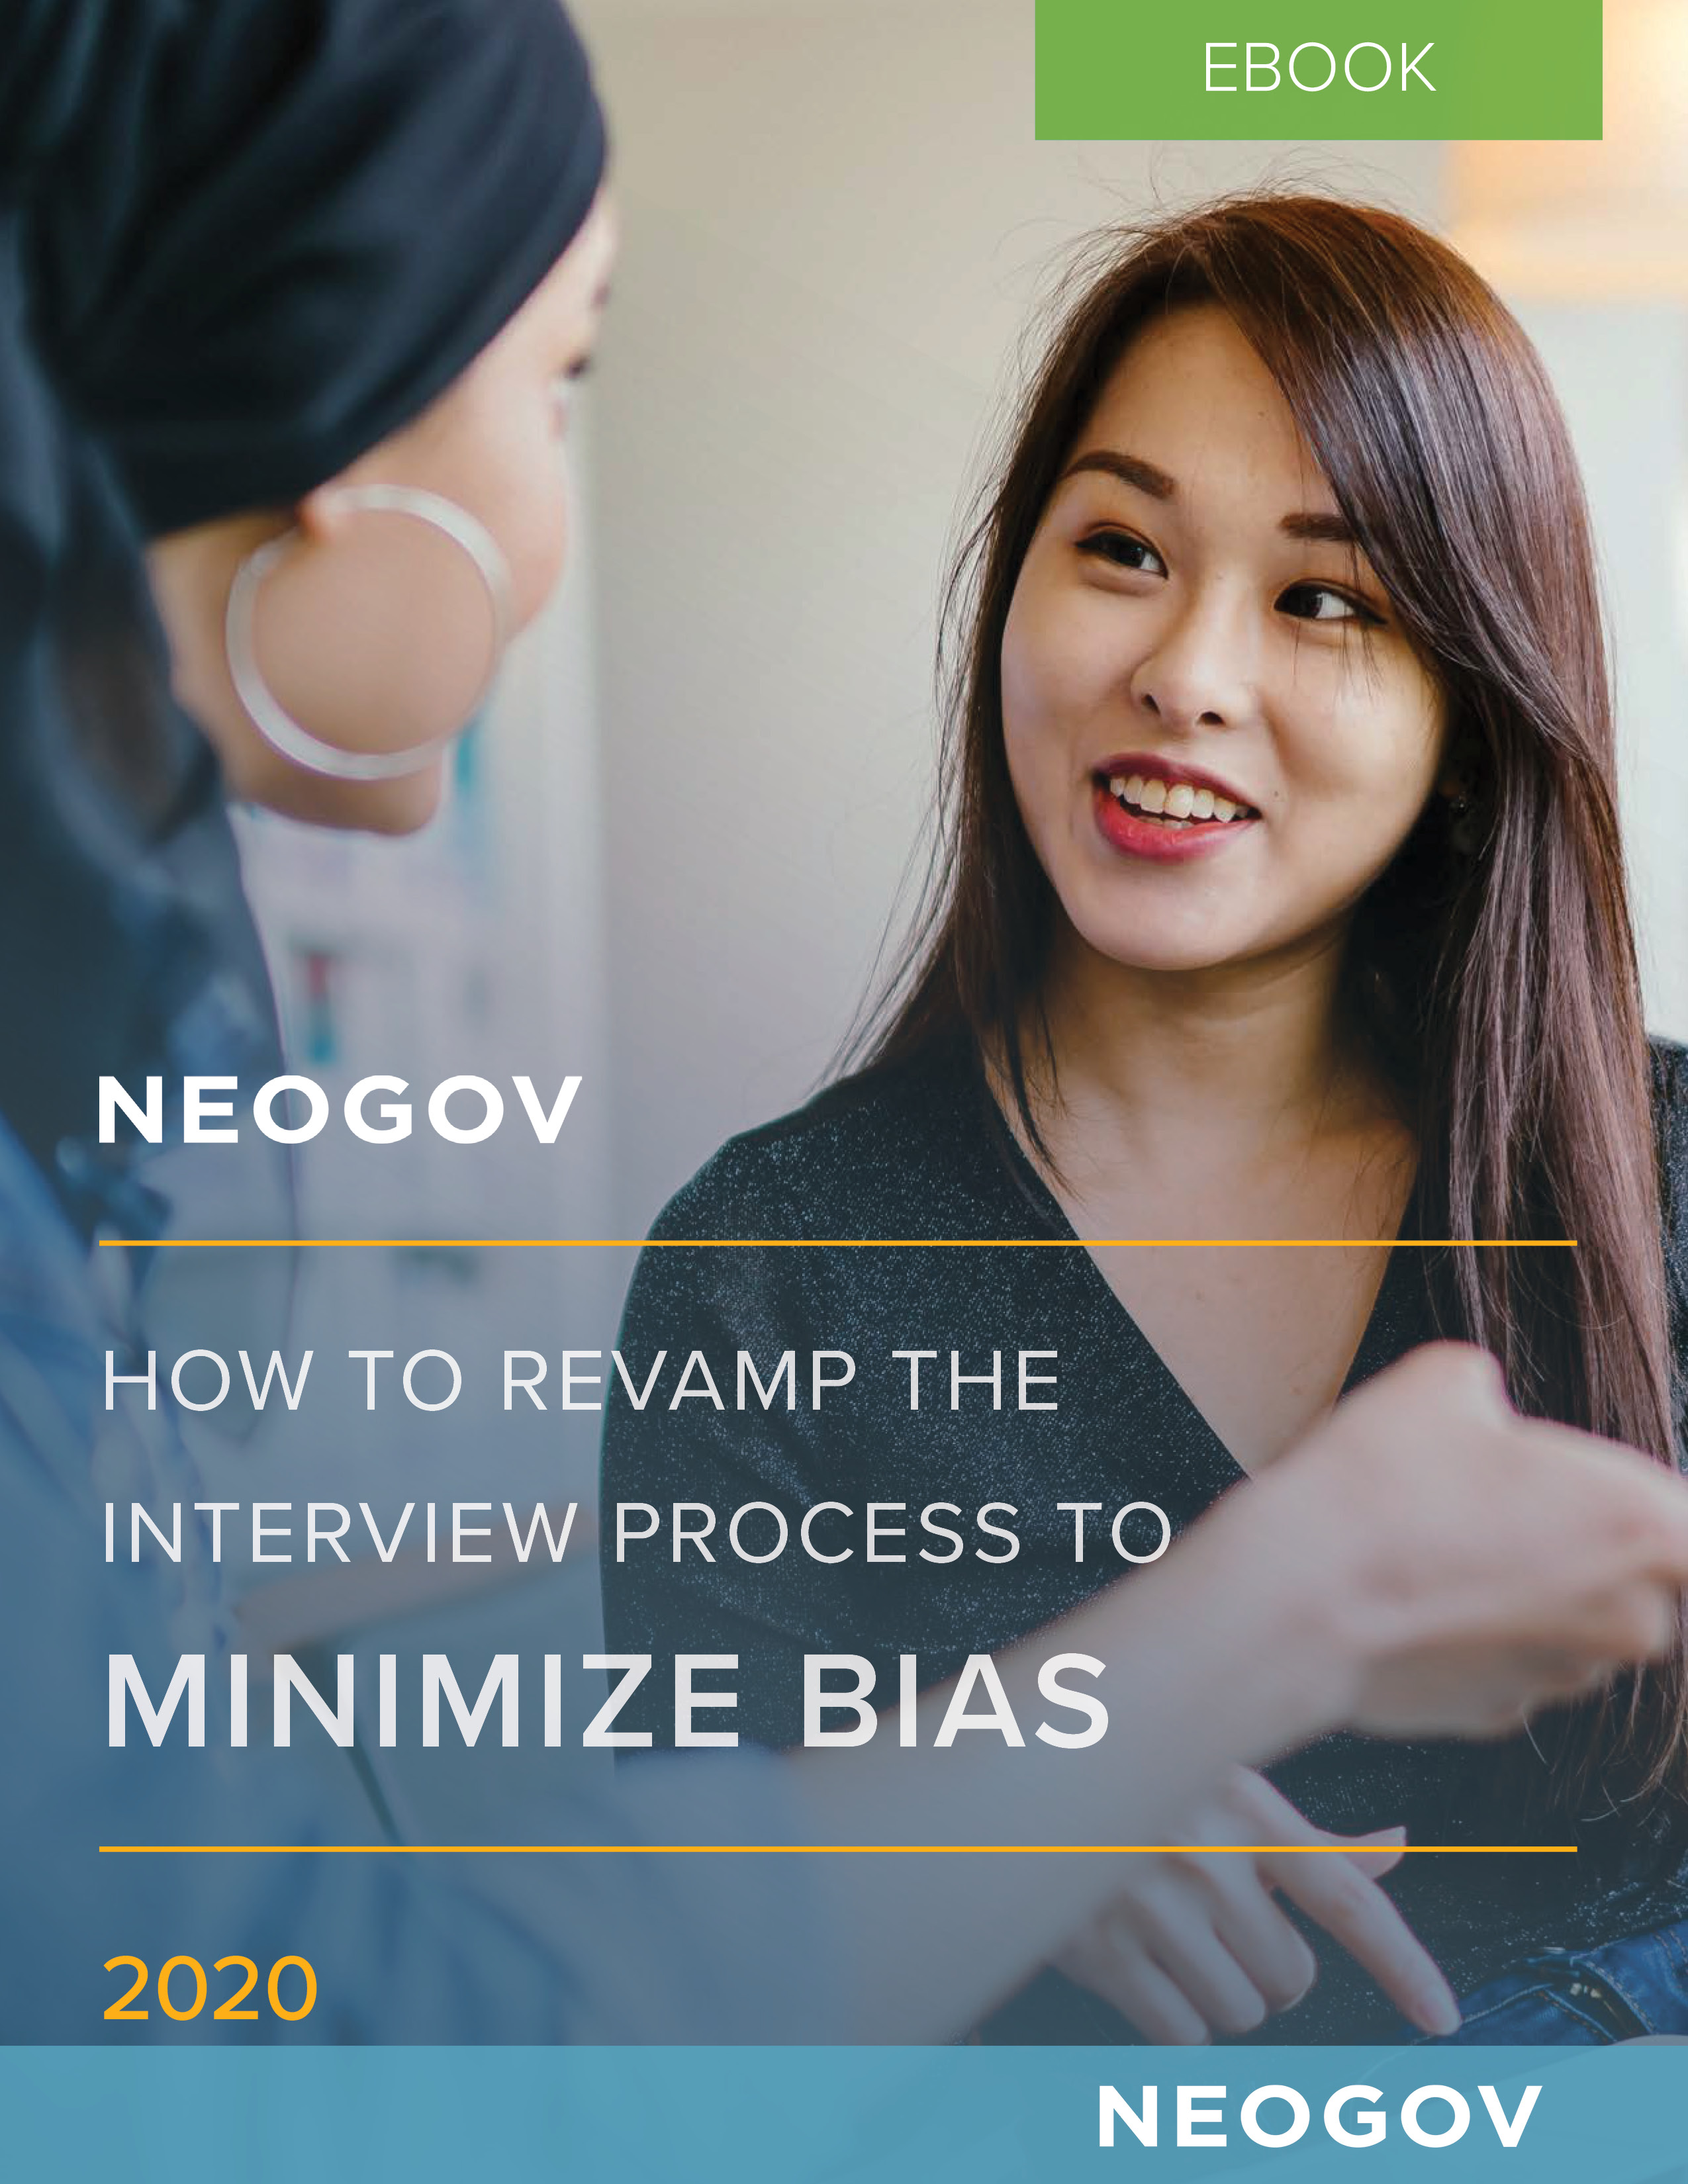 How to Revamp the Interview Process to Minimize Bias